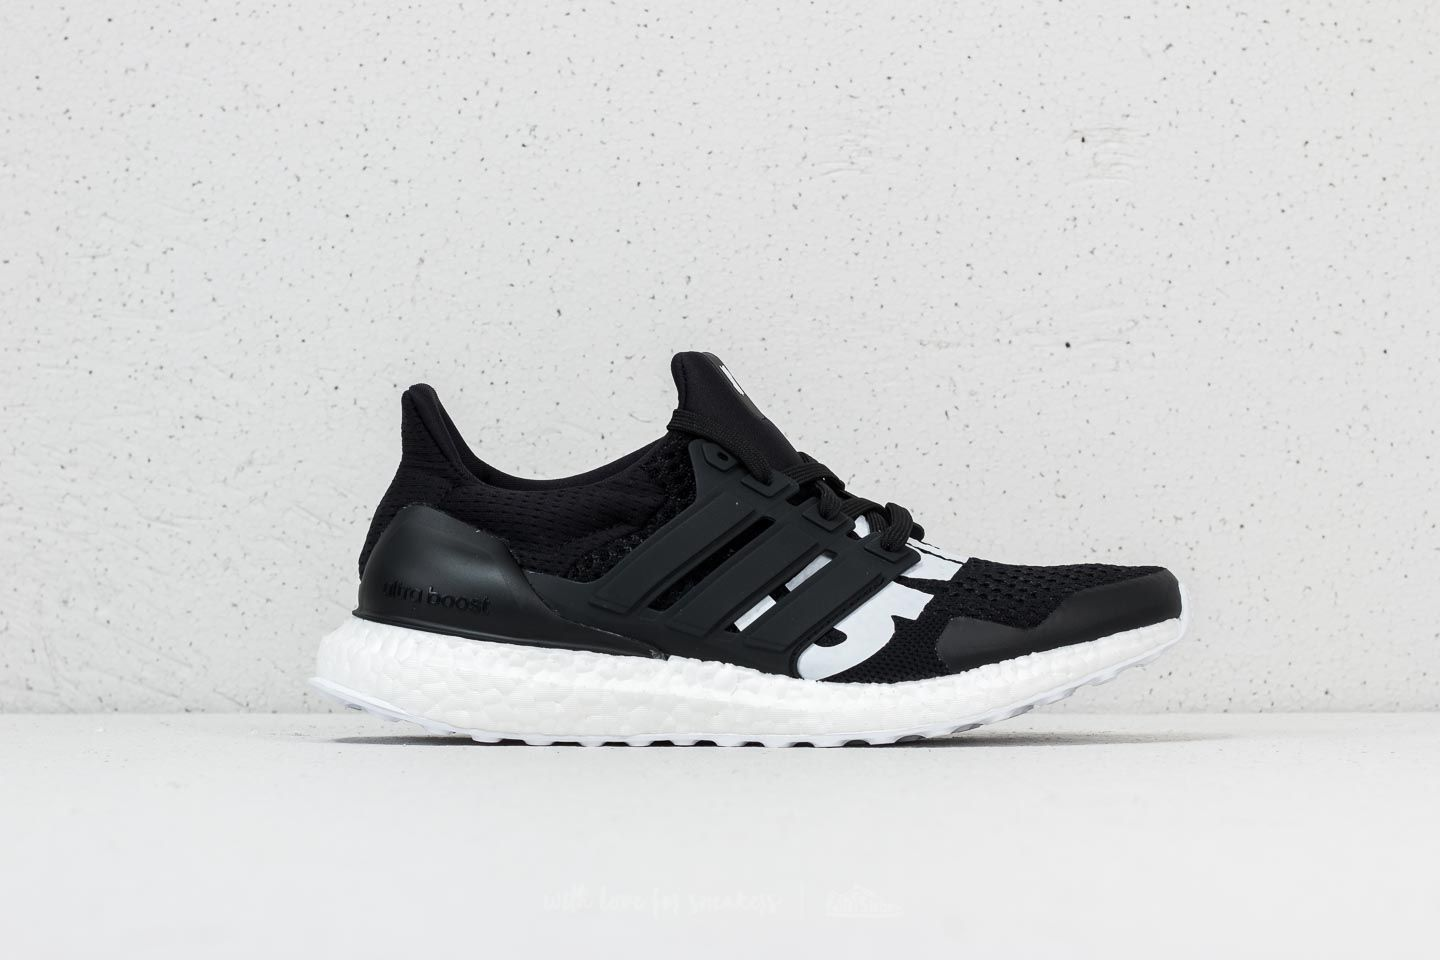 1c80a76487ffb adidas x UNDEFEATED Ultraboost Black  White at a great price  241 buy at  Footshop